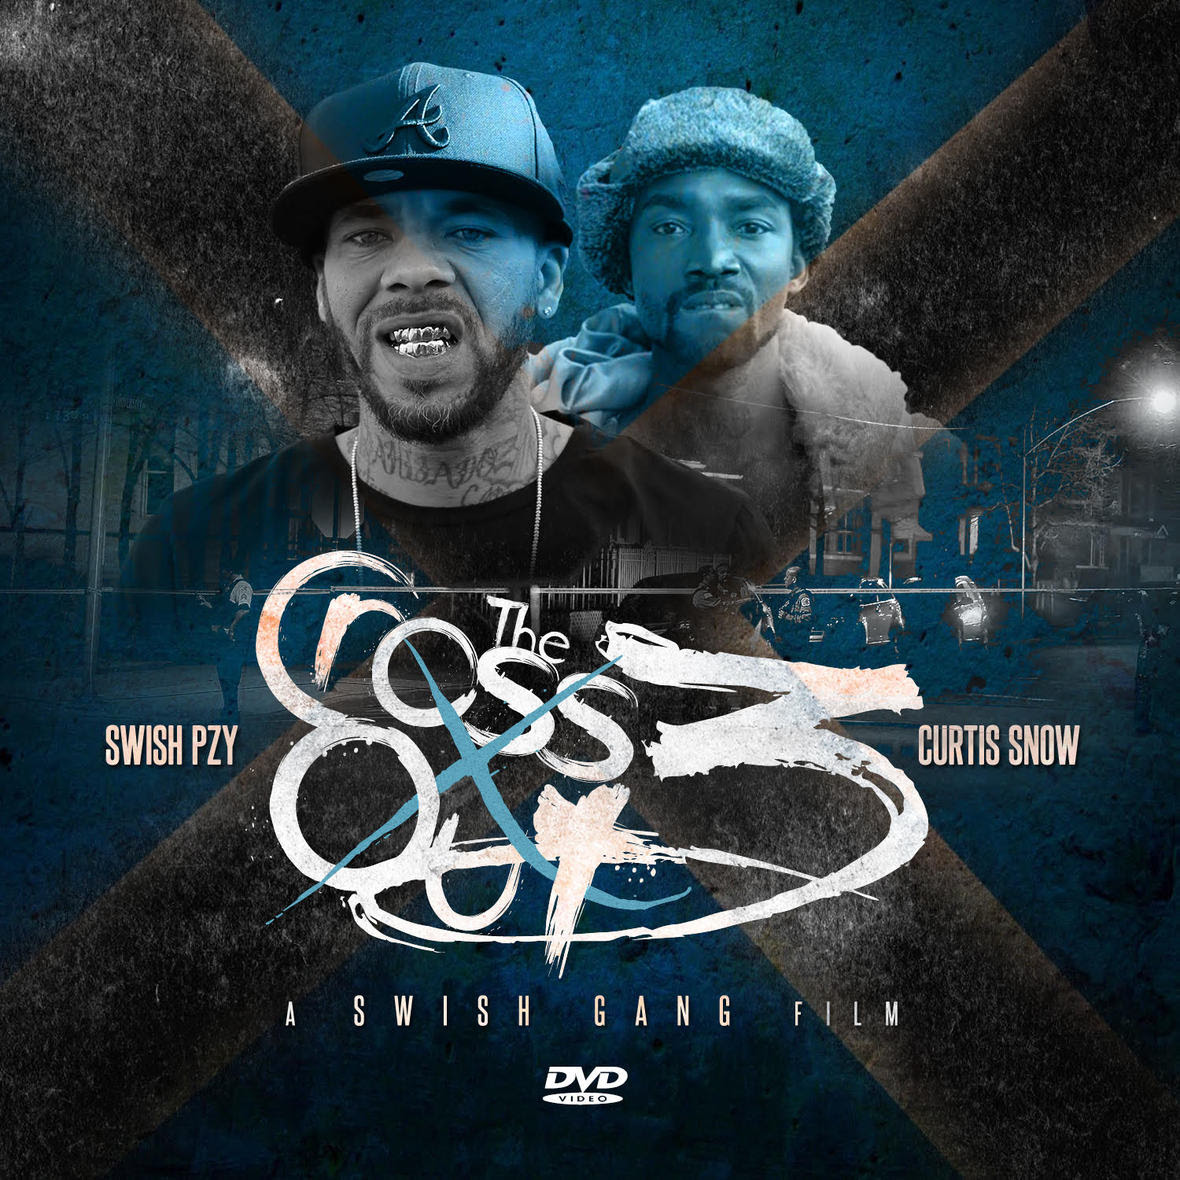 THE CROSS OUT 3 DVD COVER